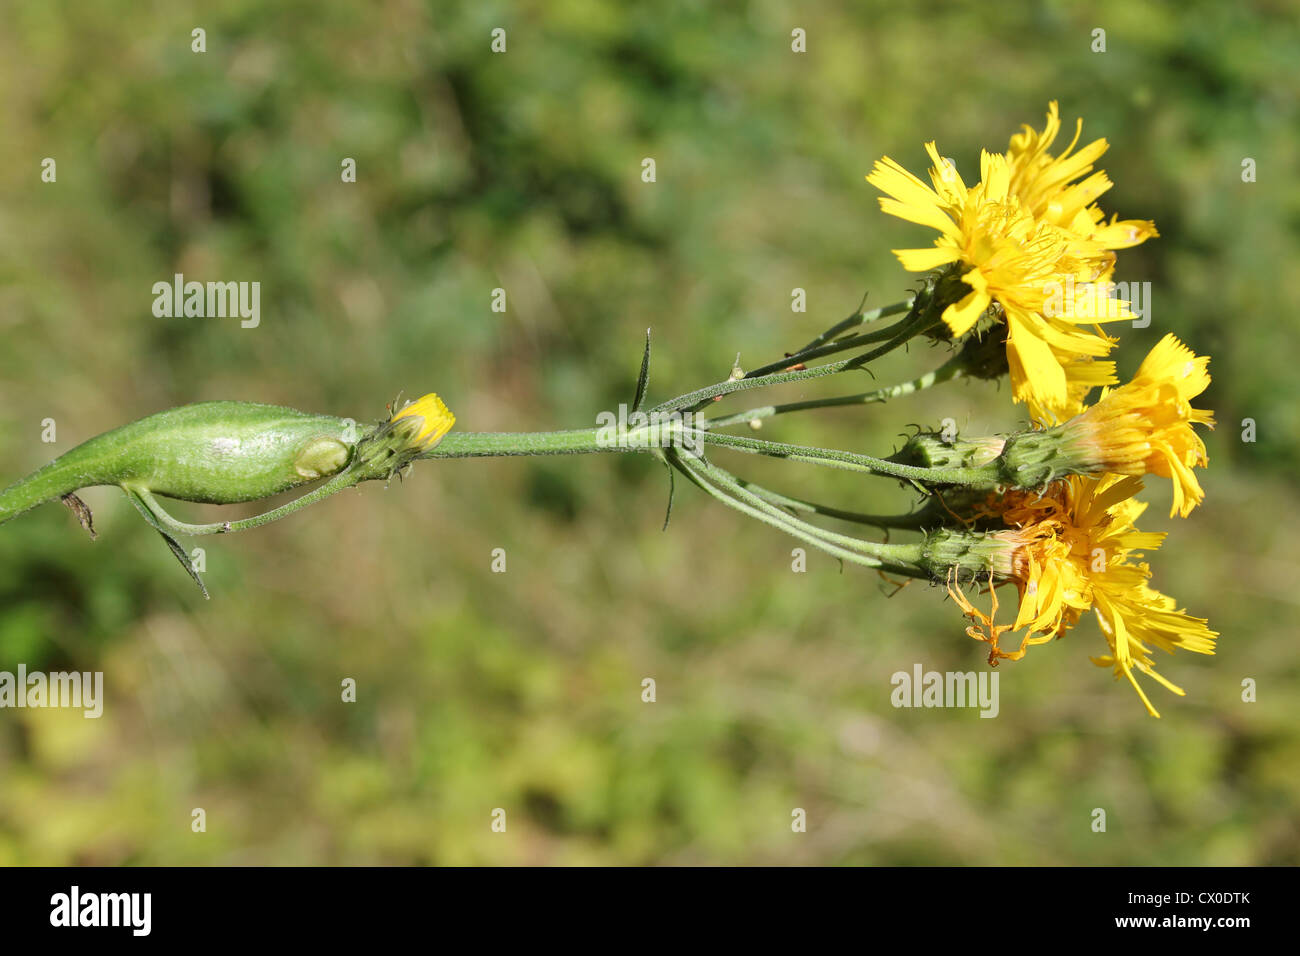 Stem Gall on Narrow-leaved a.k.a. Leafy Hawkweed Hieracium umbellatum caused by the Gall Wasp Aulacidea hieracii - Stock Image